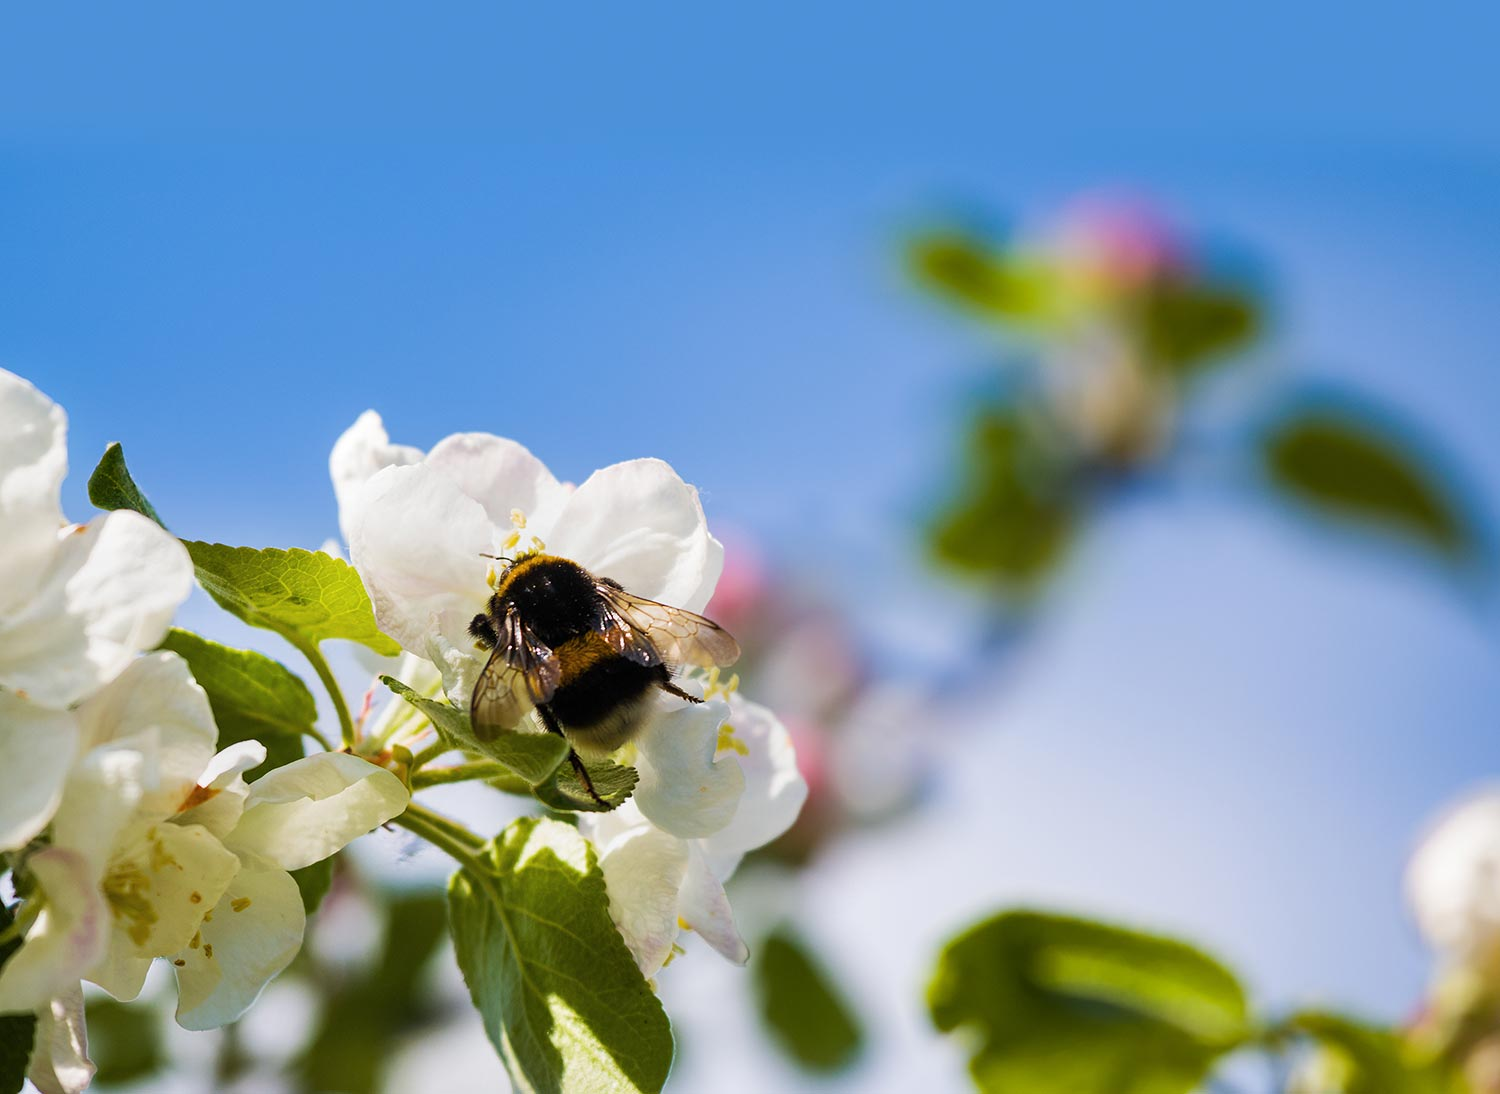 Apple blossoms with a bumblebee